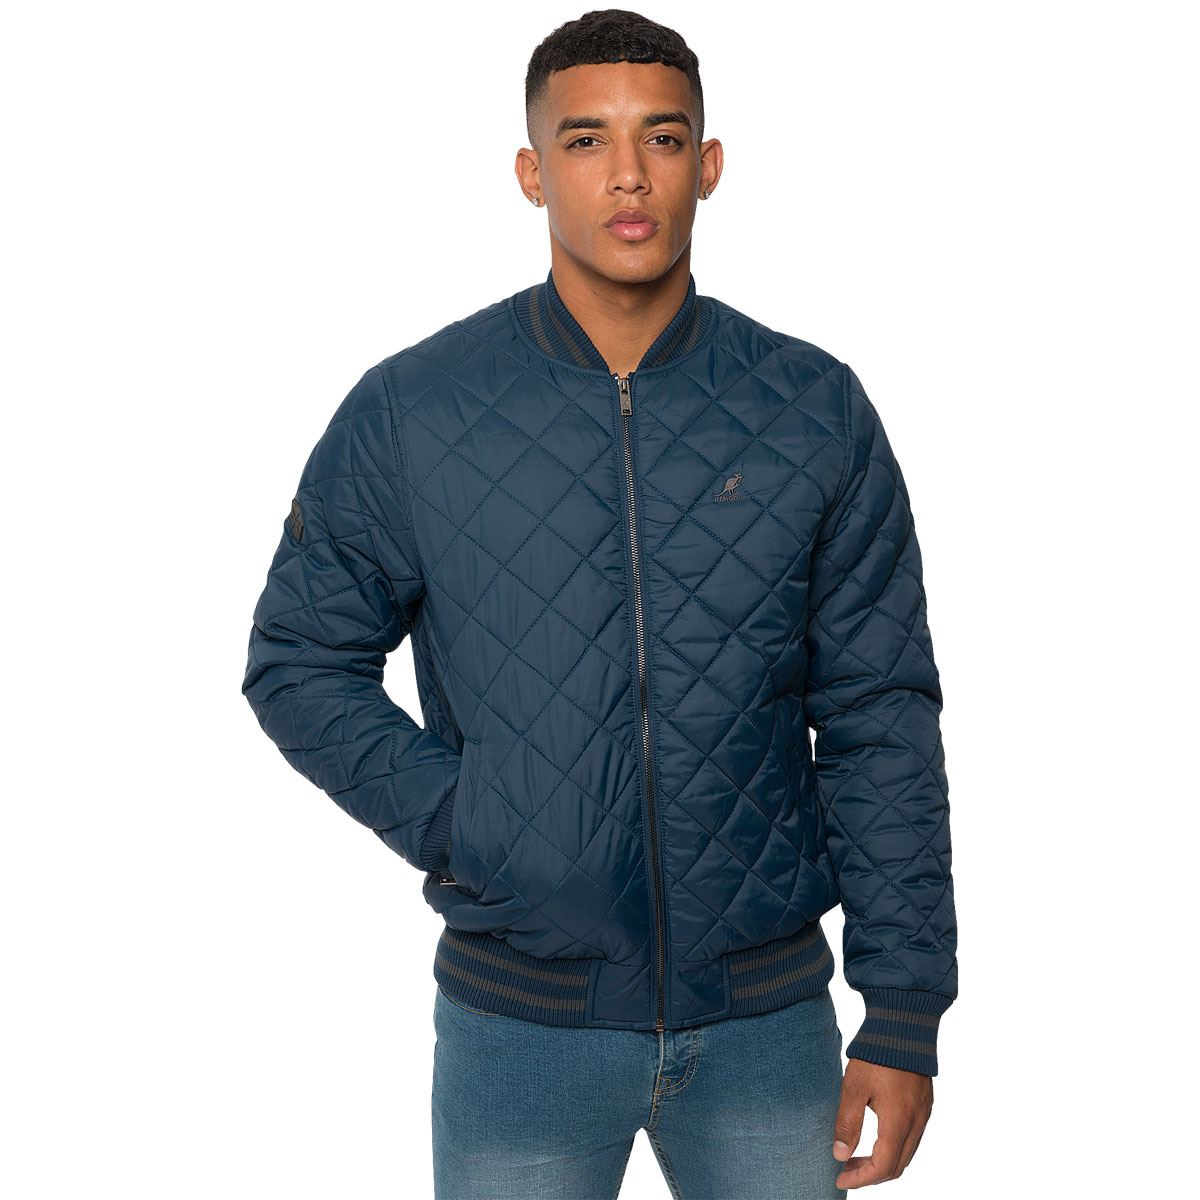 Kangol Mens Quilted Casual Bomber Jacket Branded Ribbed Puffa ... : mens quilted bomber jacket - Adamdwight.com